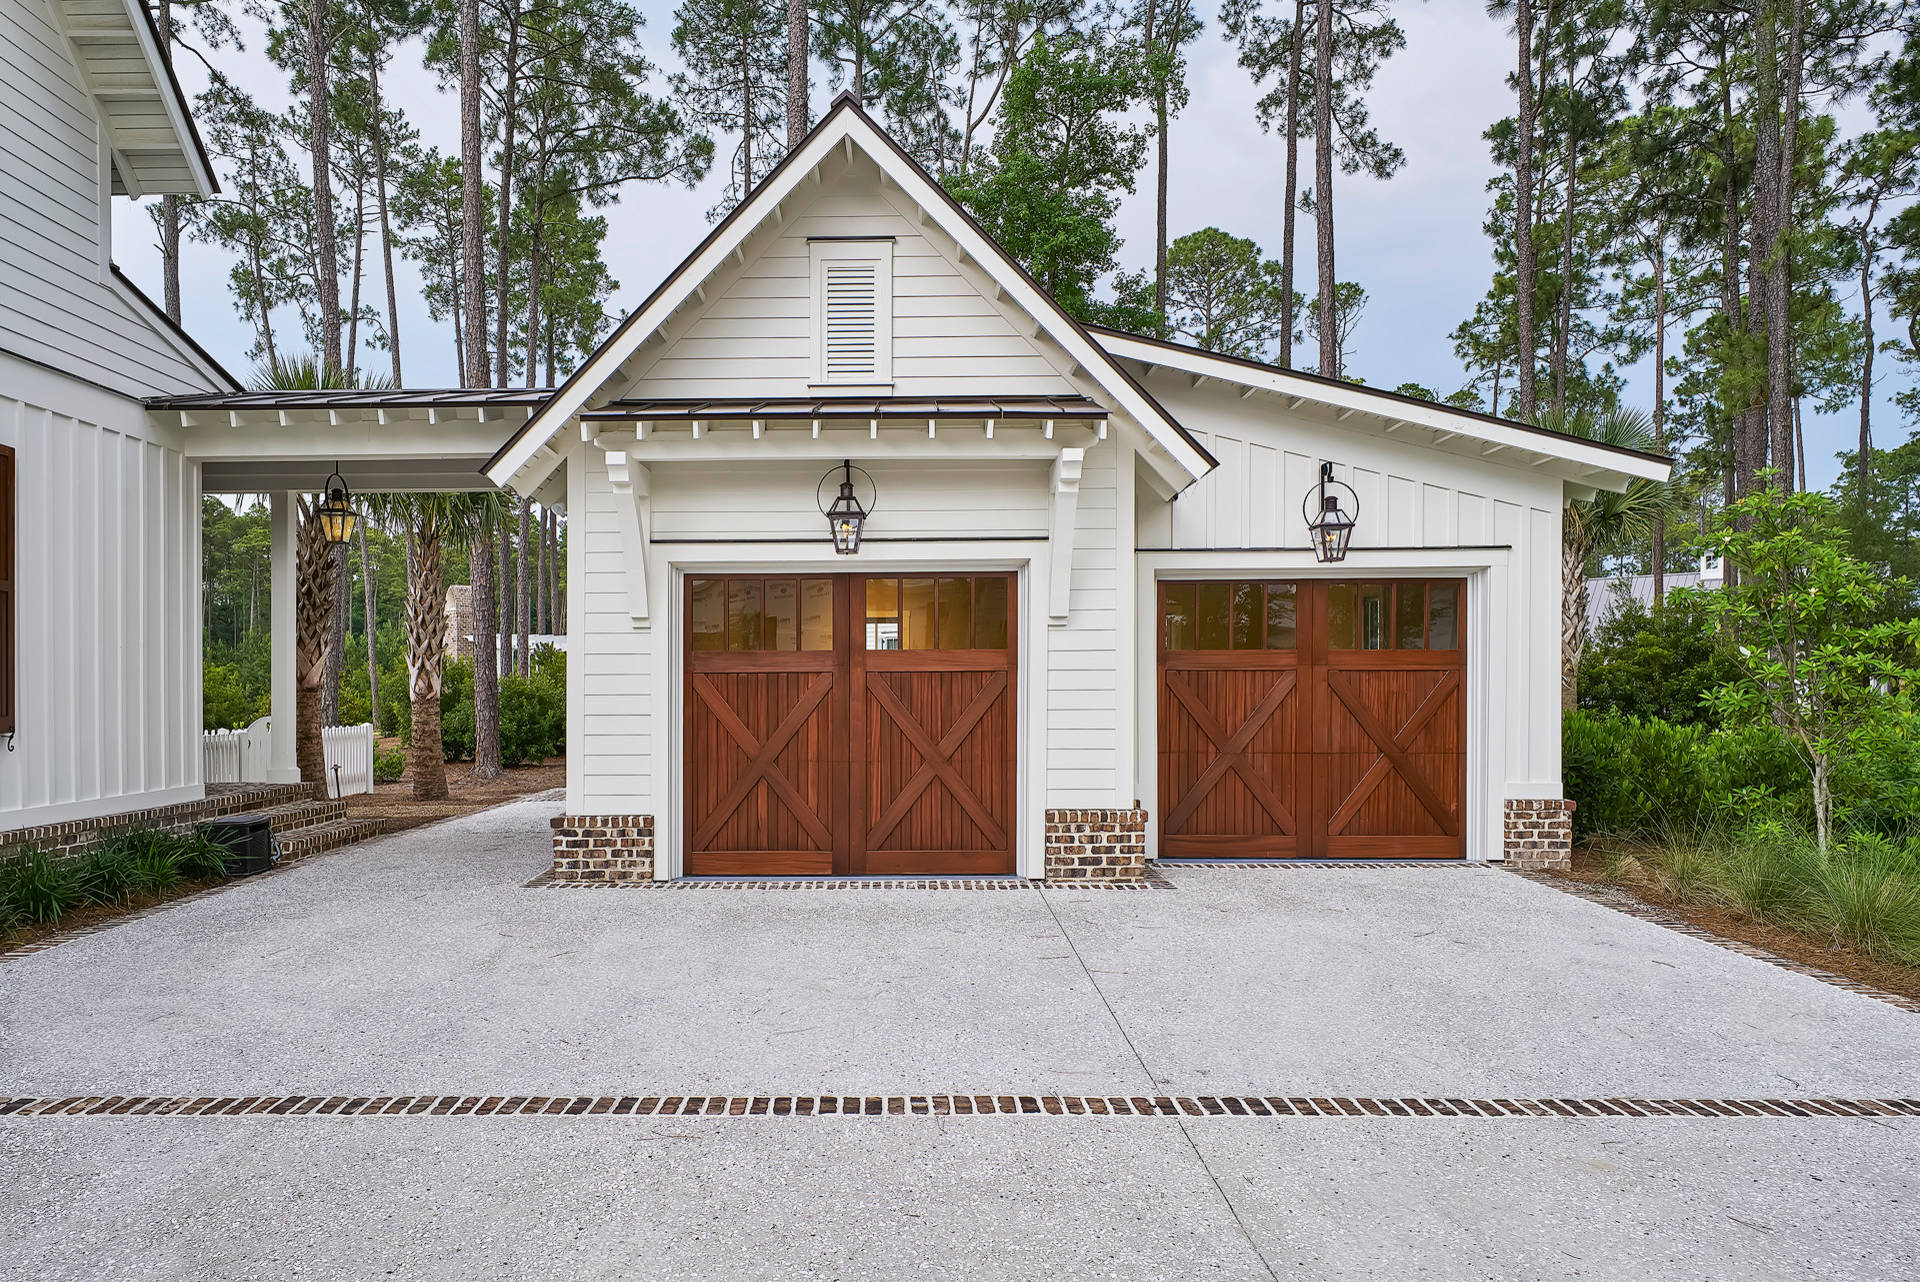 2 Car Garage Dimensions Farmhouse Garage Barn Doors Vaulted Ceilings